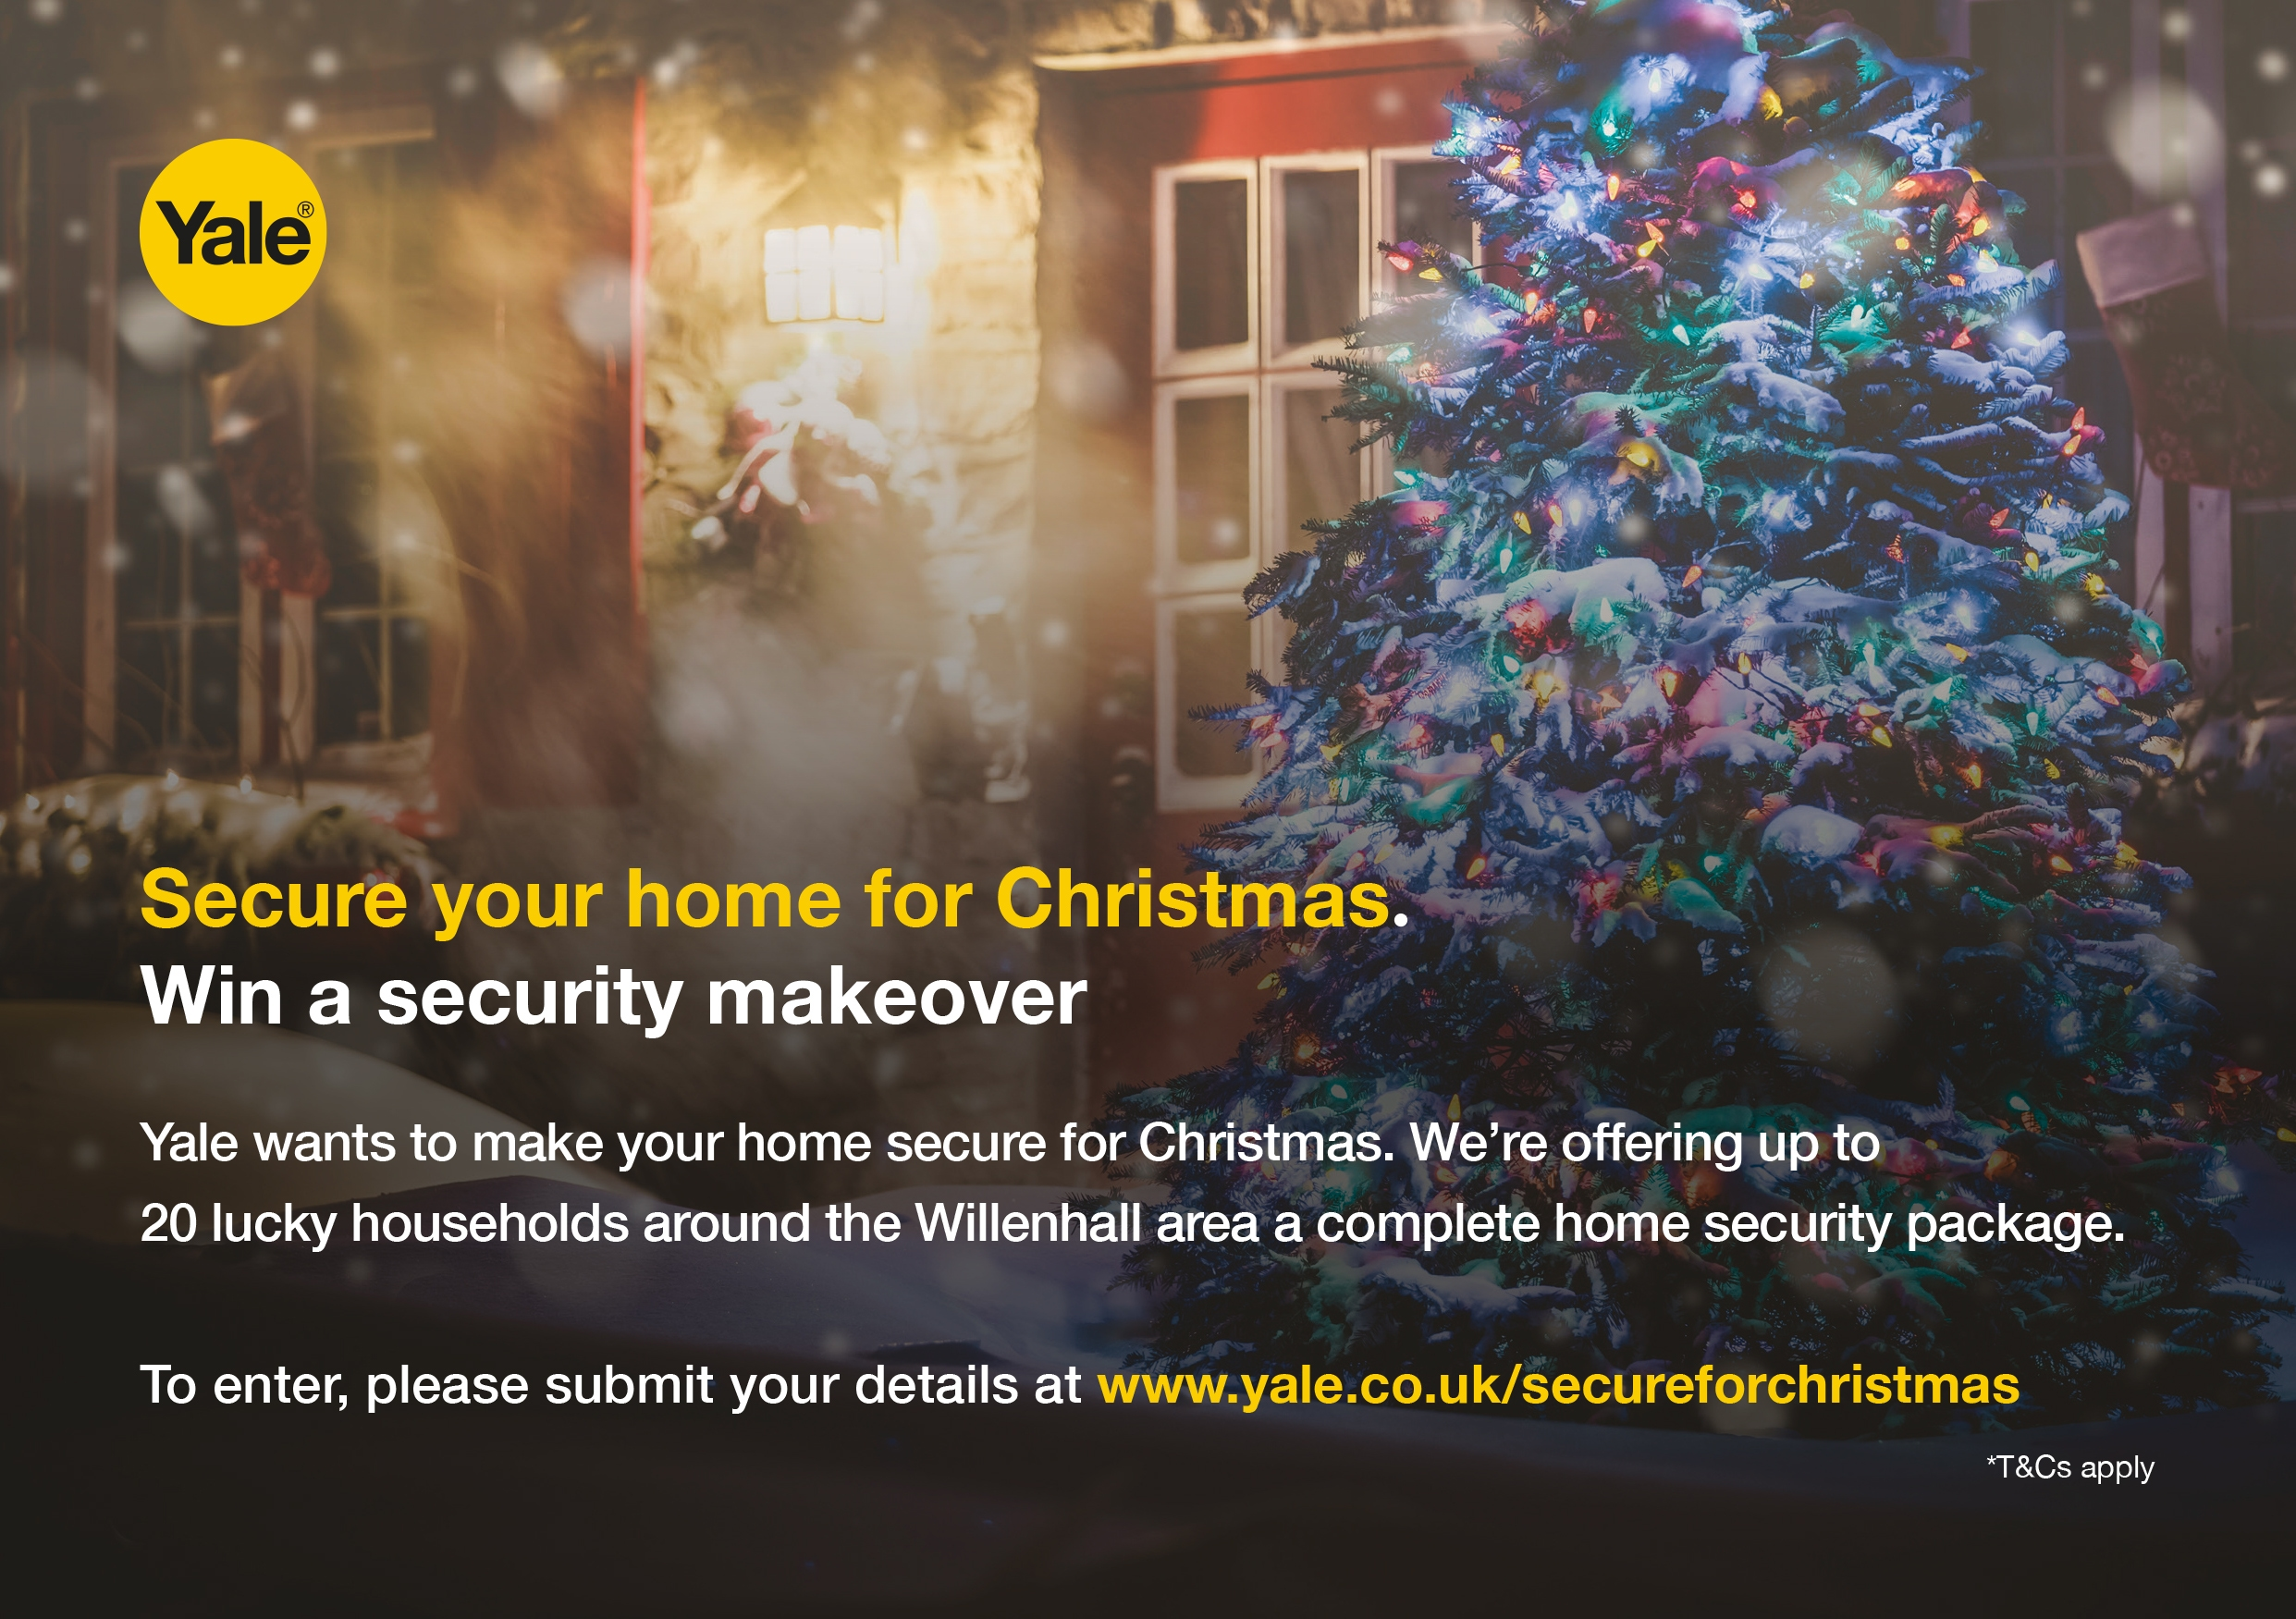 Secure Your Home For Christmas Giveaway